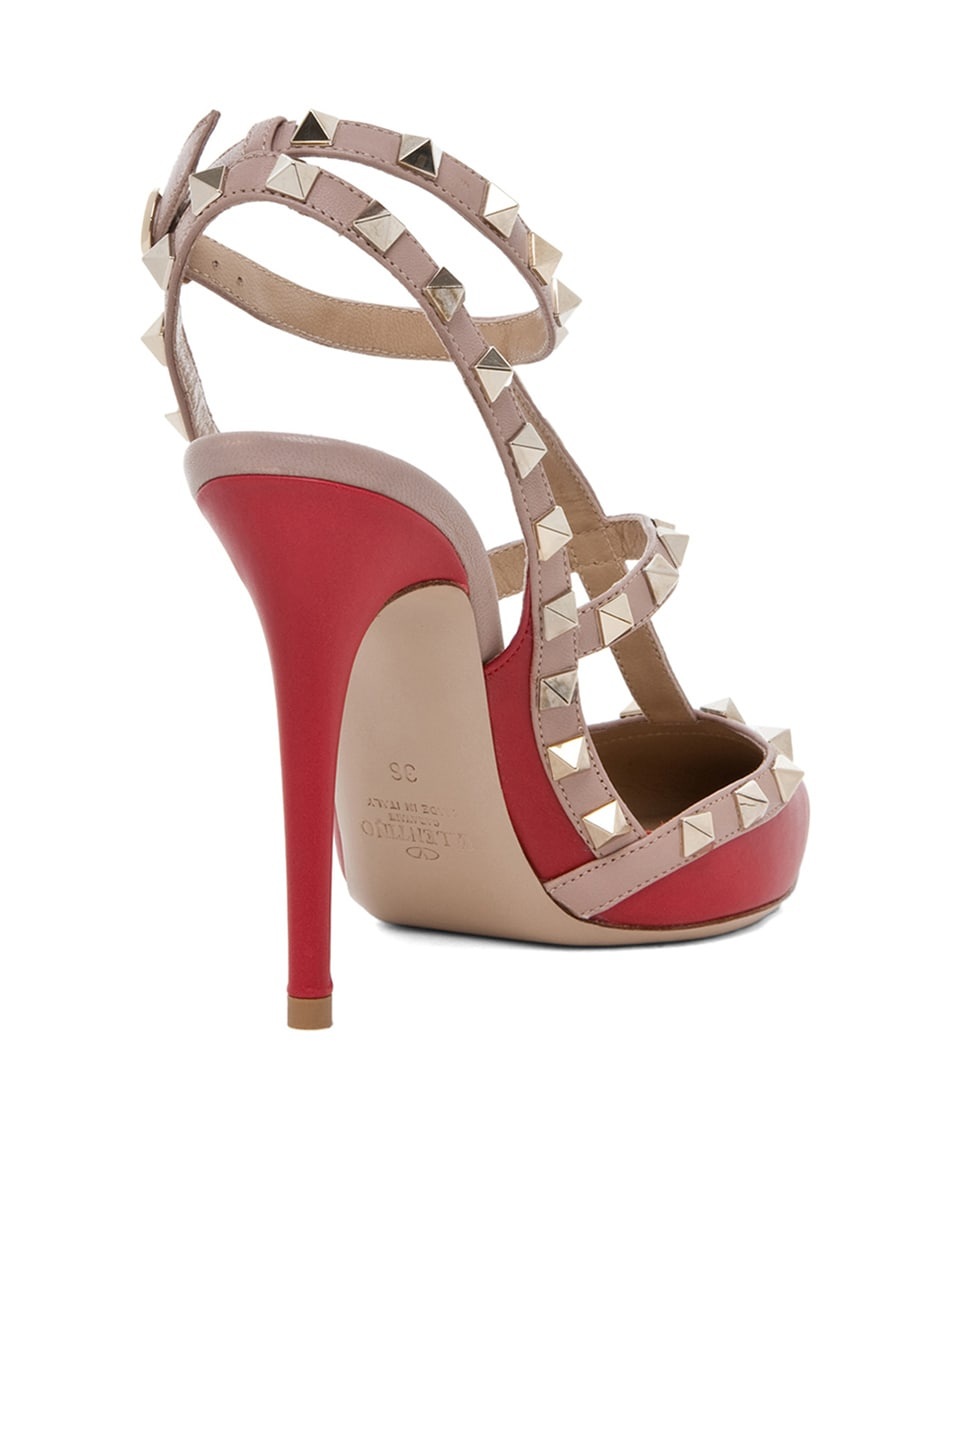 Image 3 of Valentino Rockstud Leather Slingbacks T.100 in Red